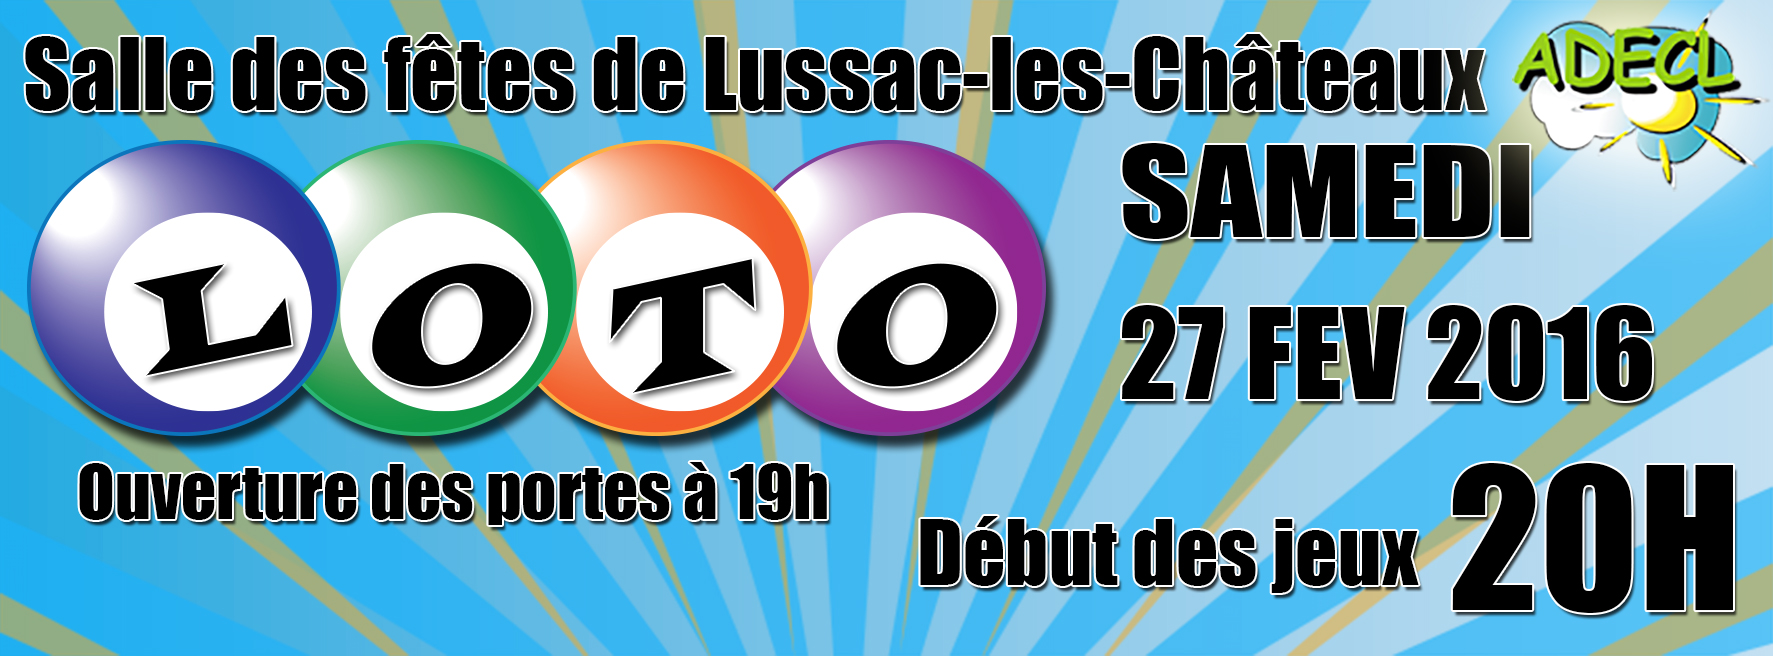 LOTO-2016-couverture-facebook